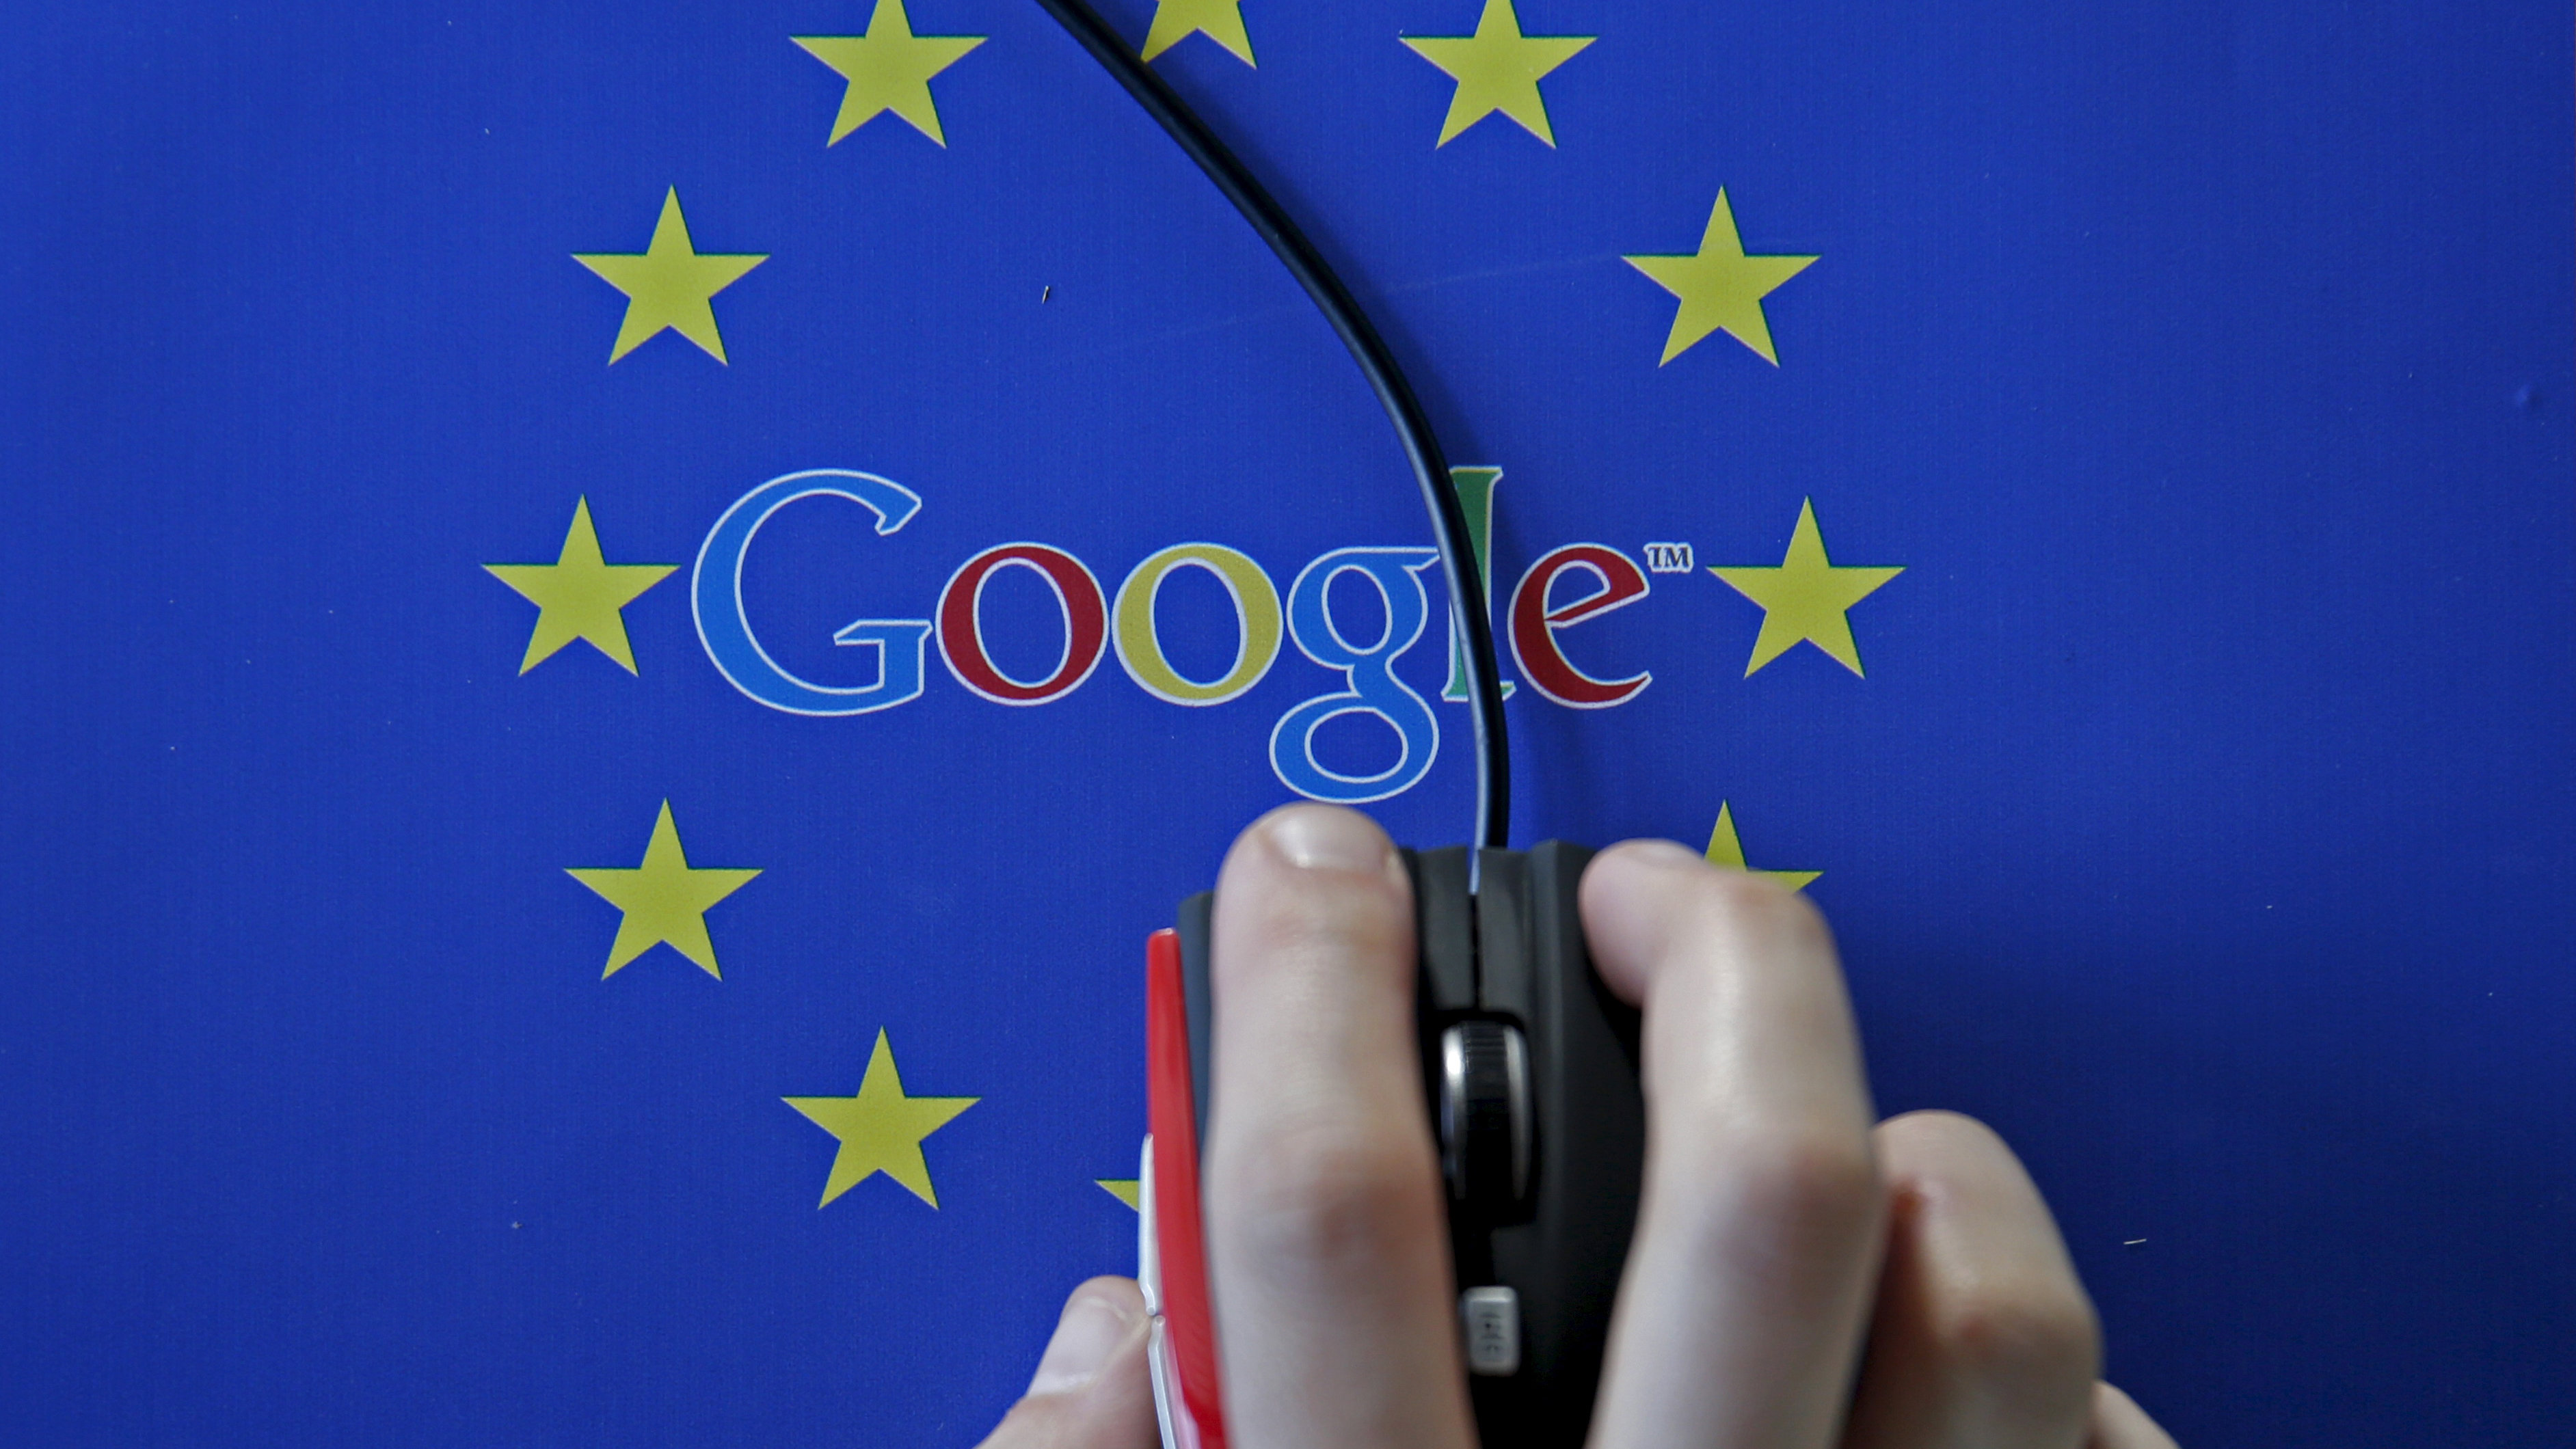 A woman hovers a mouse over the Google and European Union logos in Sarajevo, in this April 15, 2015 photo illustration. The European Union accused Google Inc on Wednesday of cheating competitors by distorting Internet search results in favour of its Google Shopping service and also launched an antitrust probe into its Android mobile operating system.